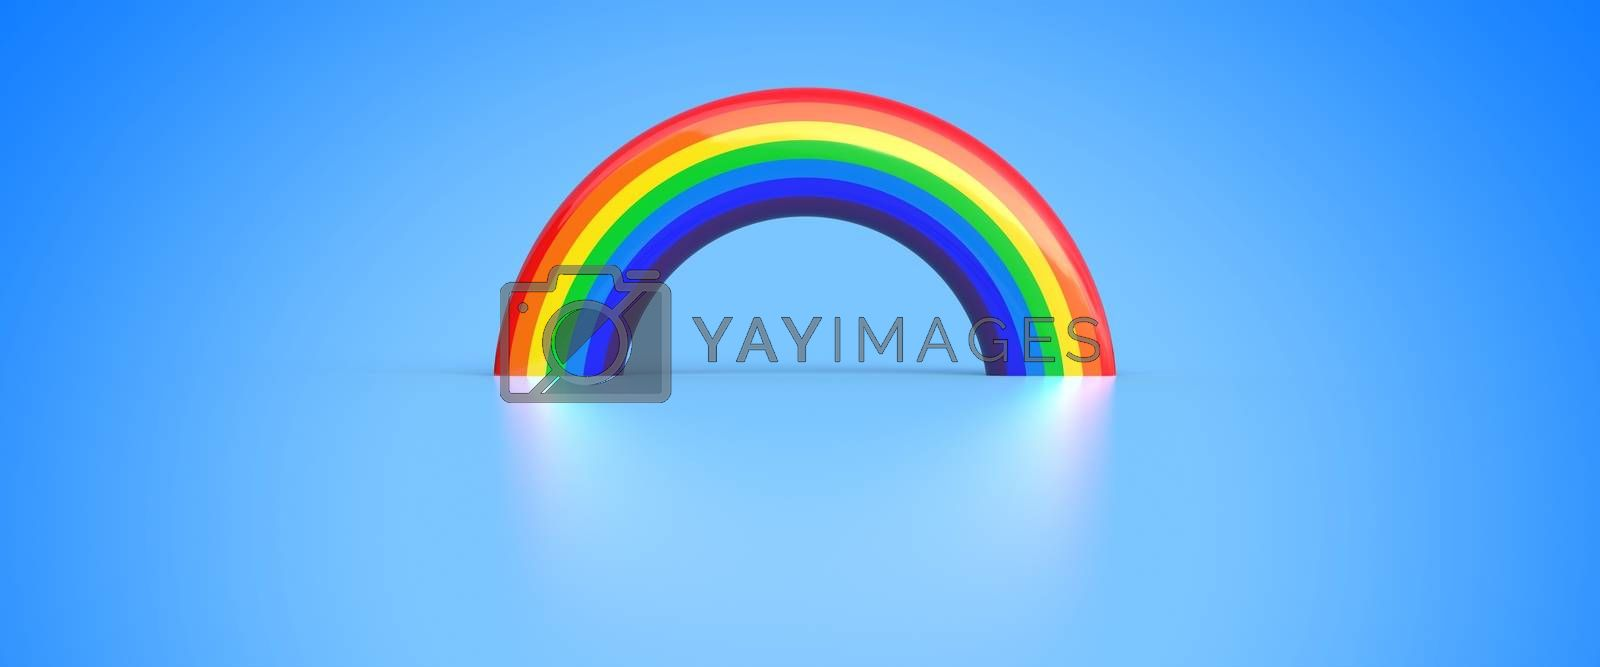 rainbow and its reflection on blue background - 3D render